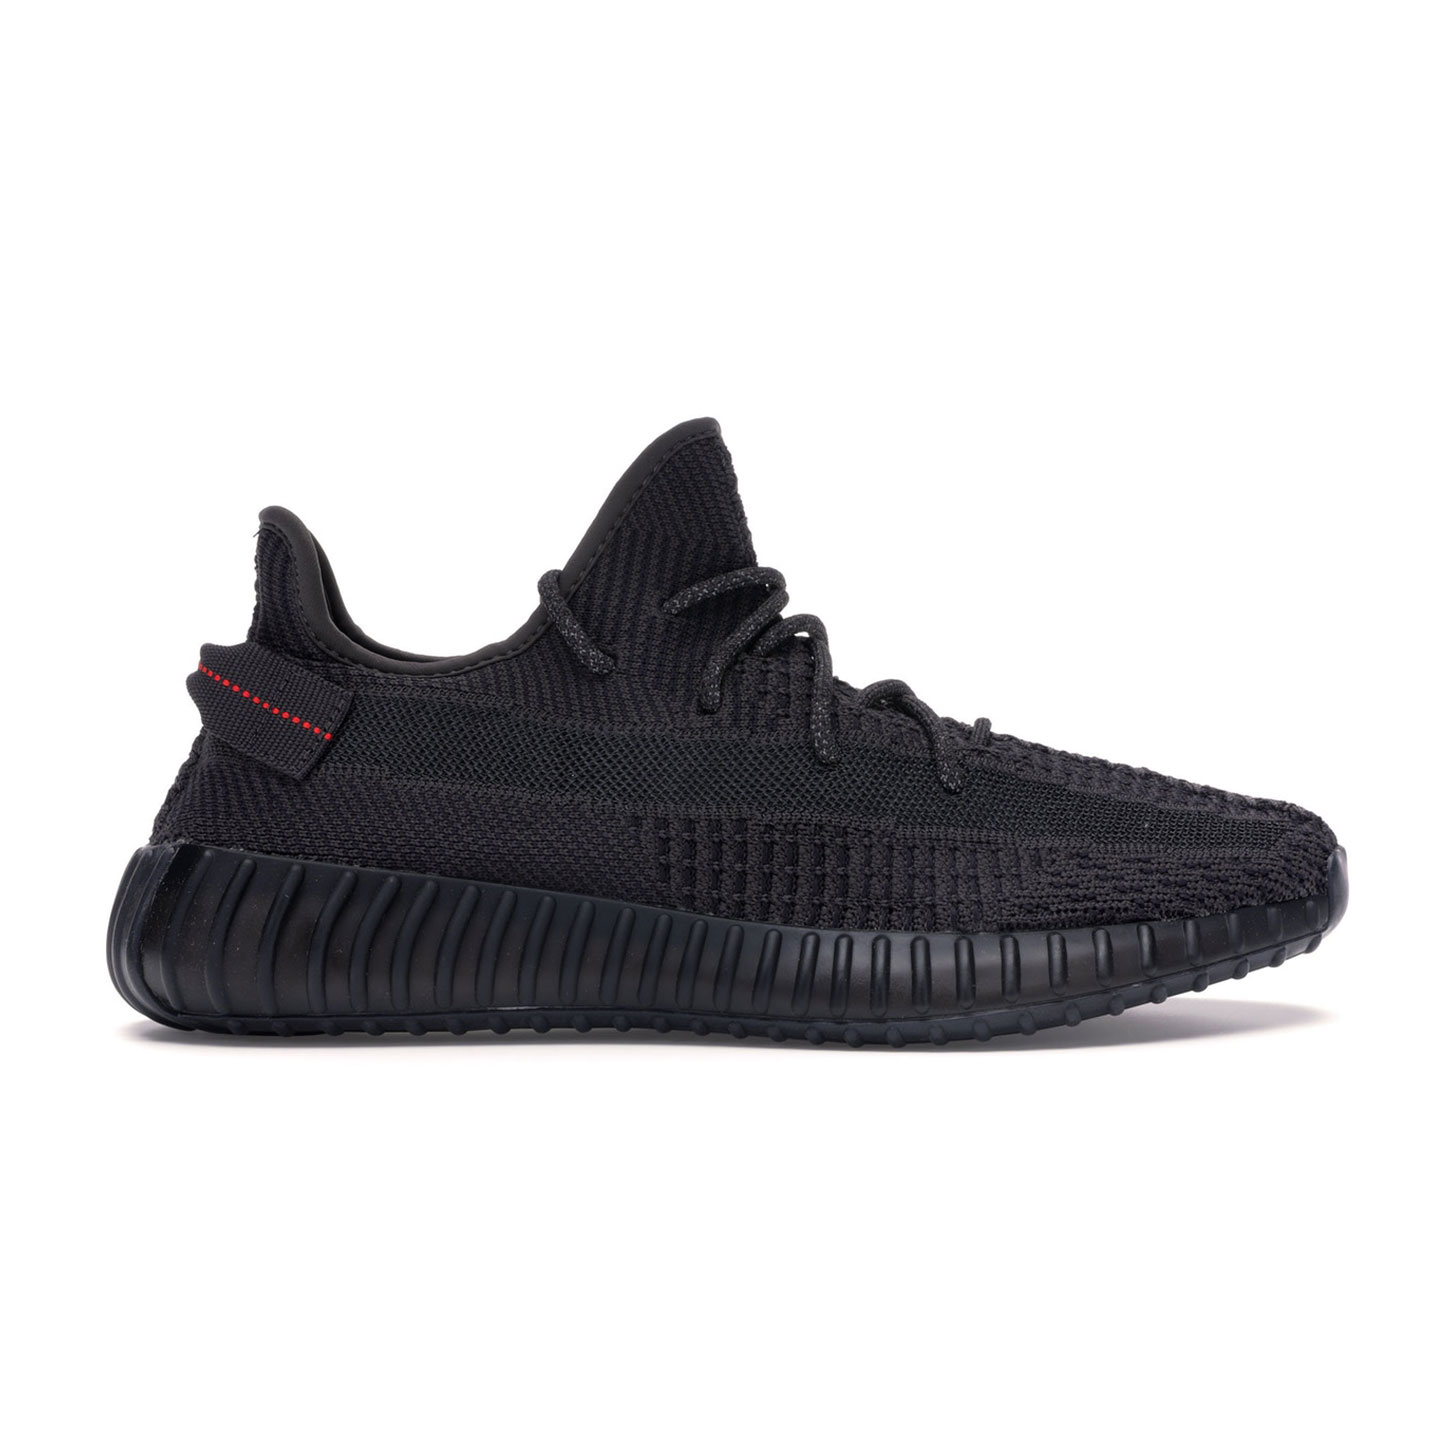 Yeezy-Boost-350-V2-Black-Non-Reflective